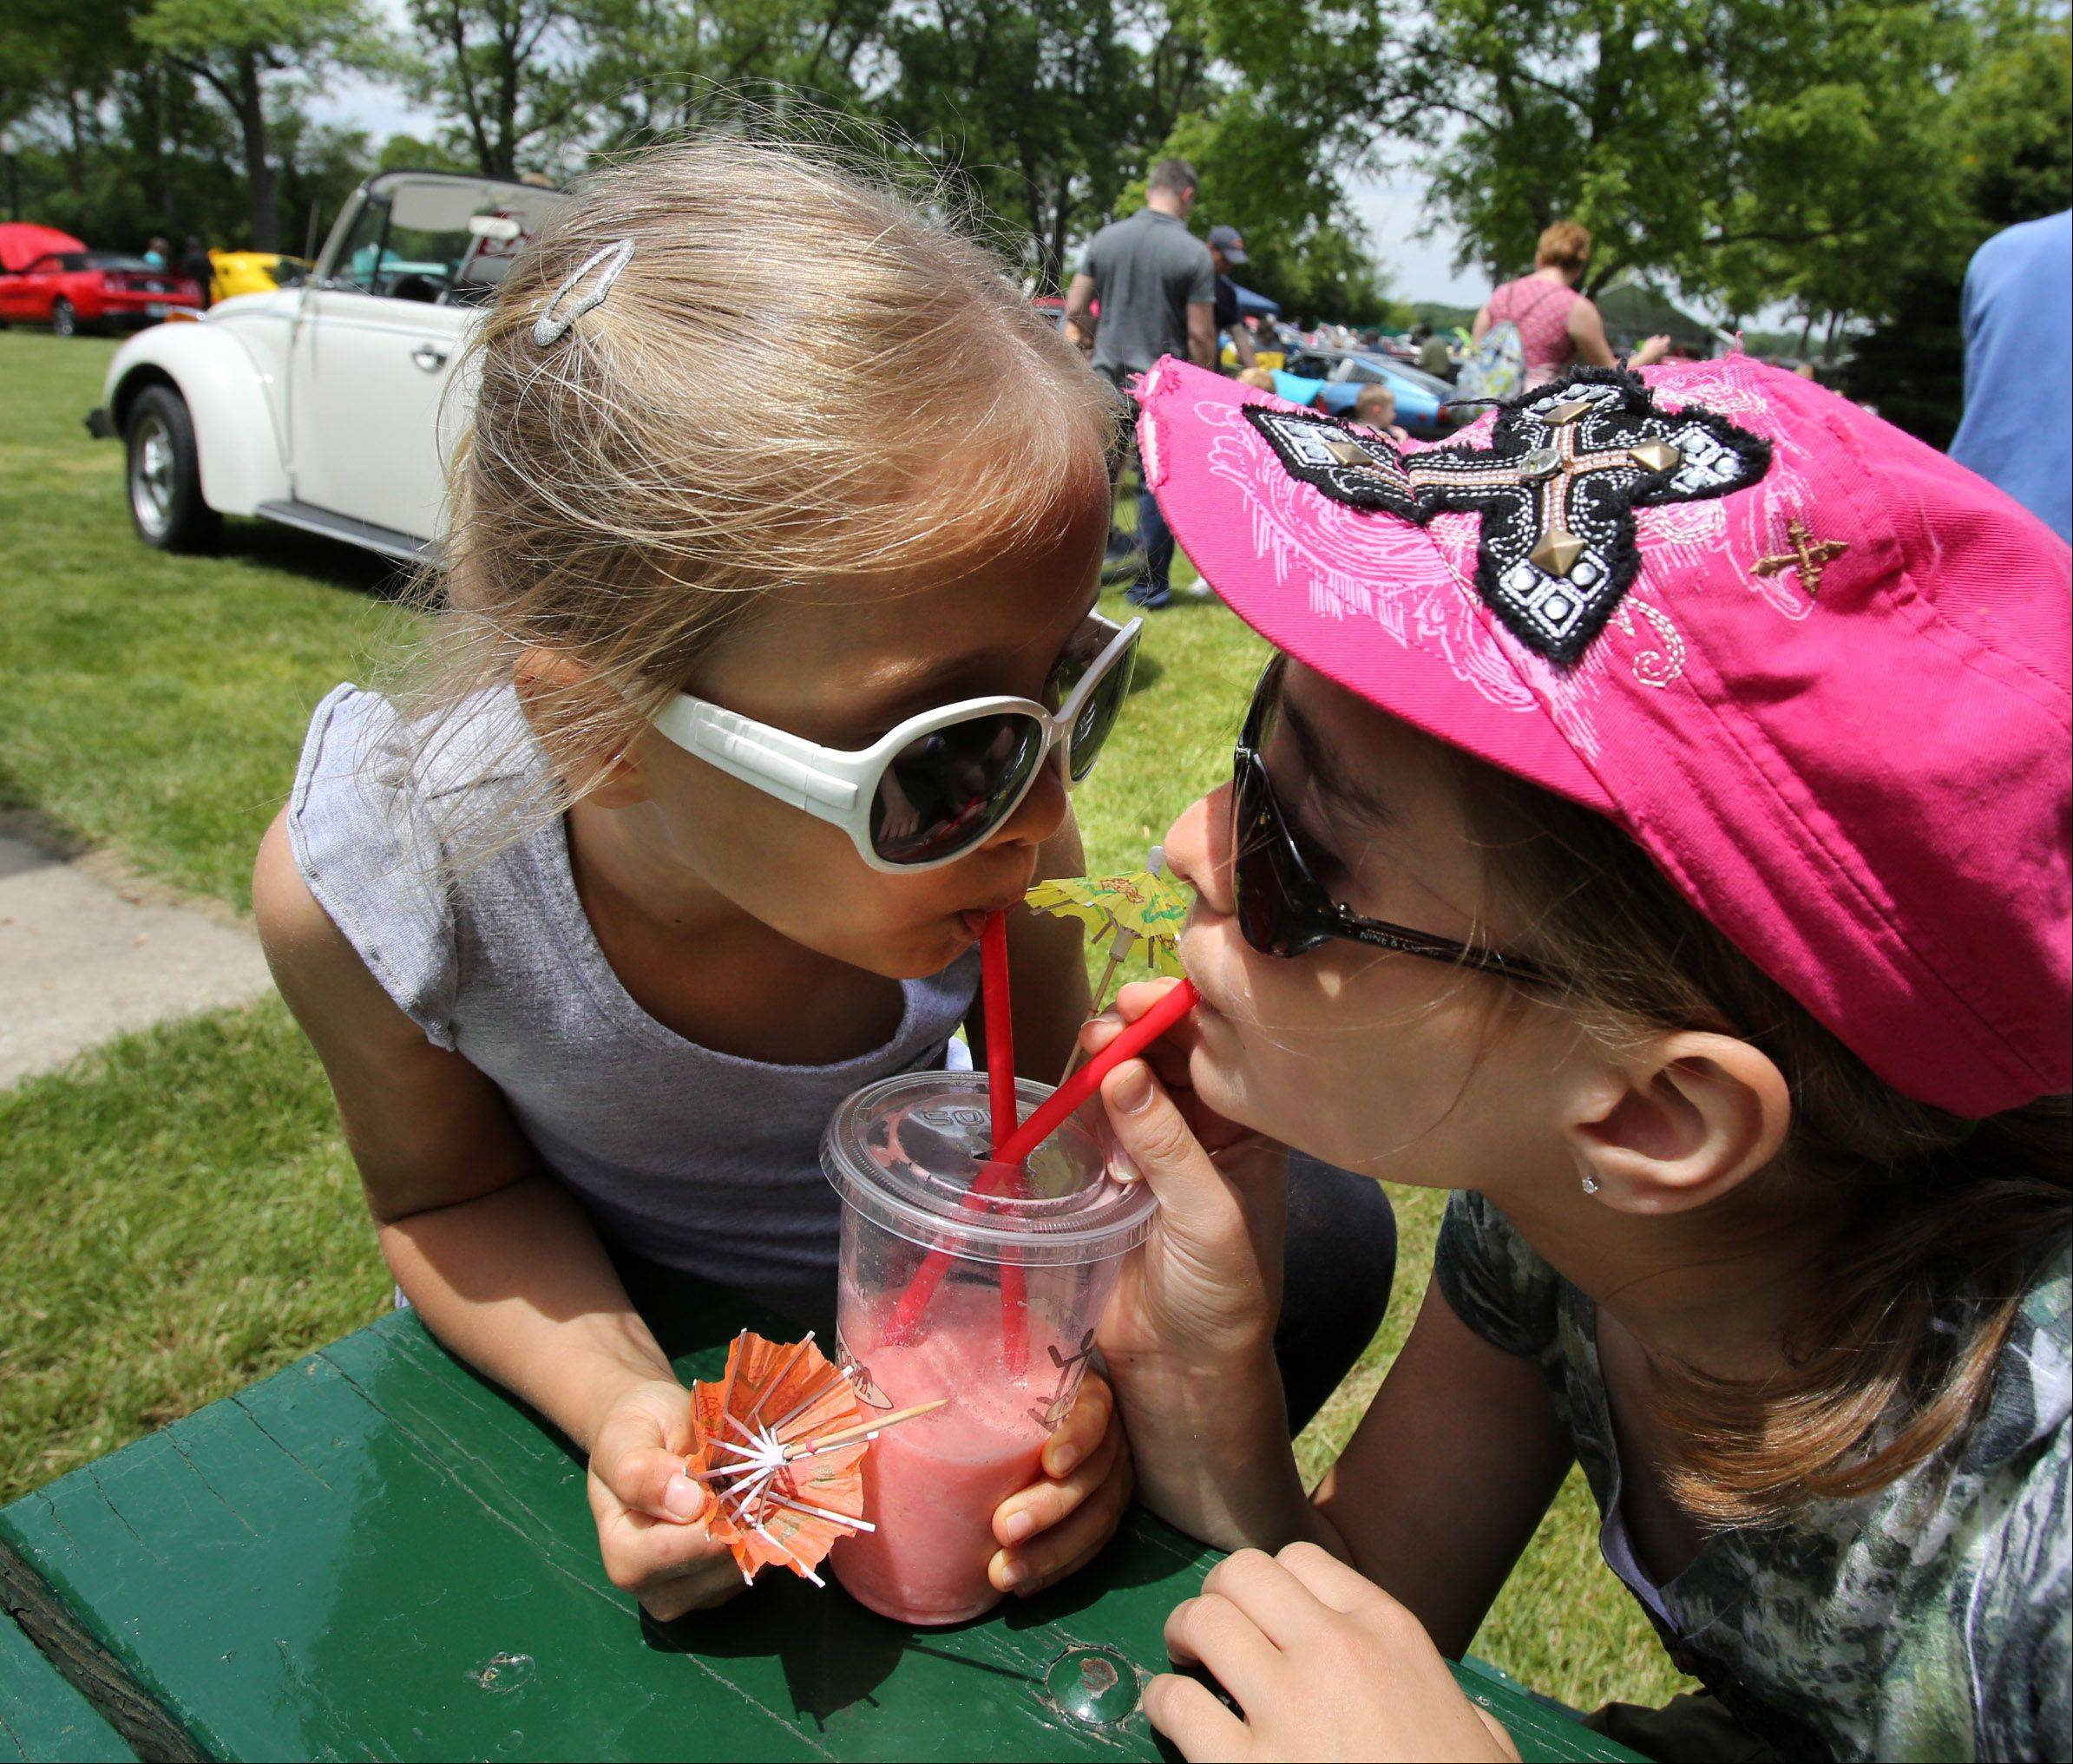 Sophia Frank, 6, and her sister Isabella, 11, both of Lake Villa, share a smoothie during the auto show at Lake Villa Celebration of Summer at Lehmann Park in Lake Villa Saturday.